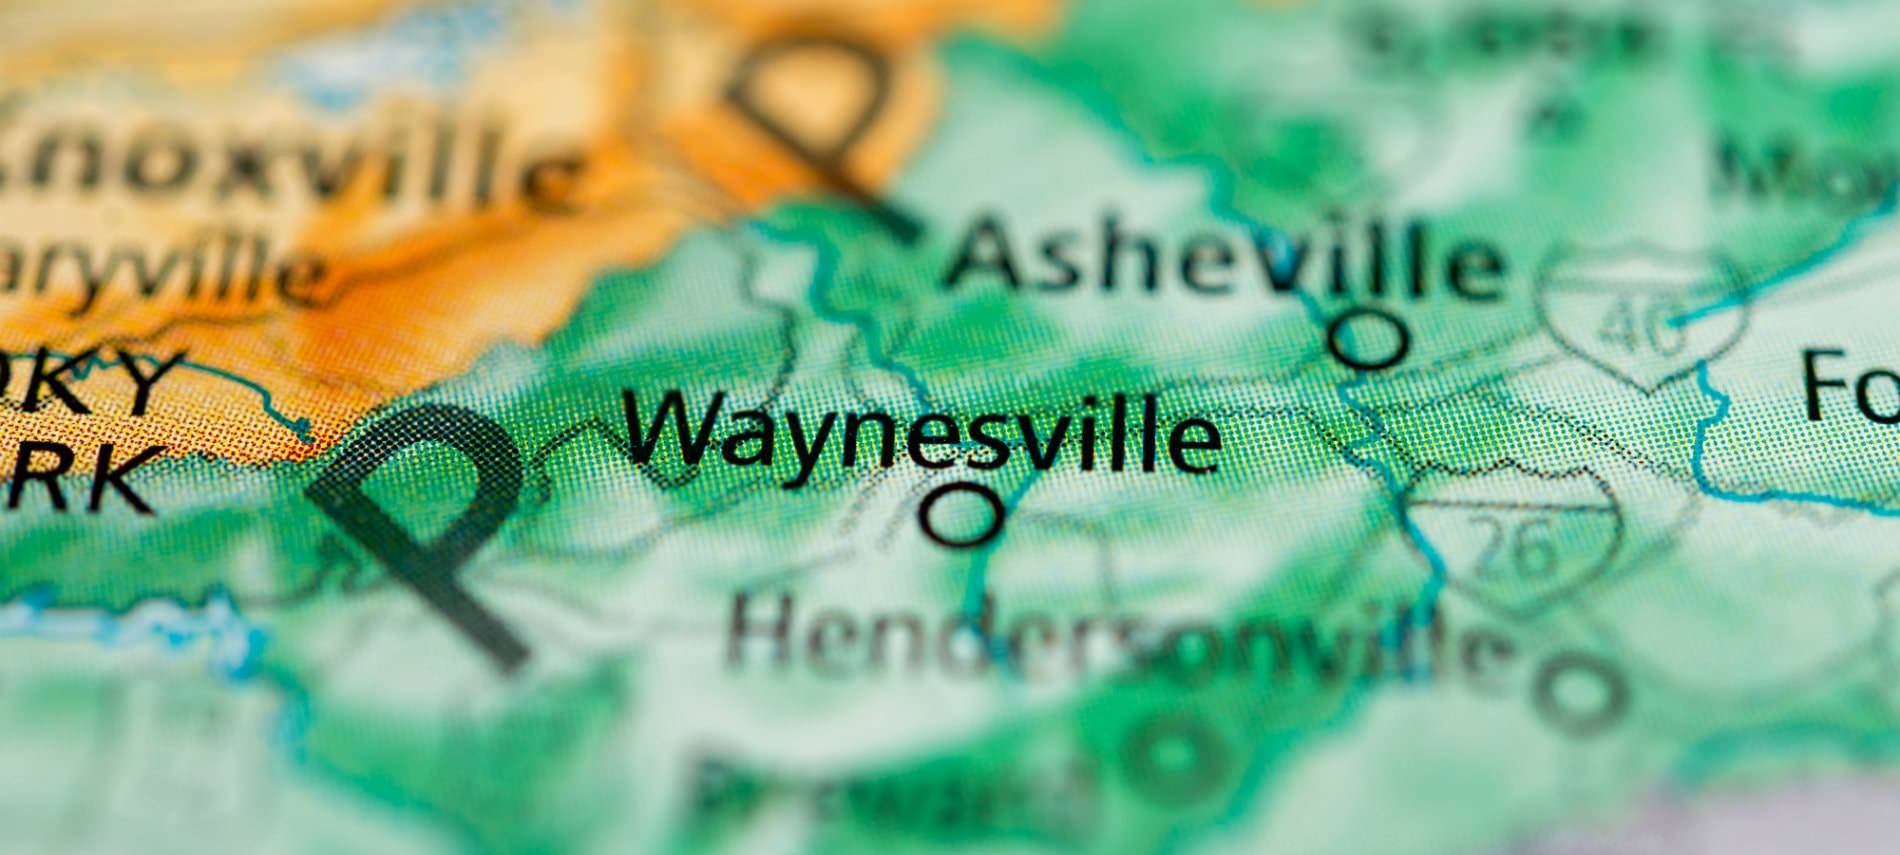 Close up view of a yellow and green shaded map of Waynesville, NC and the surrounding towns